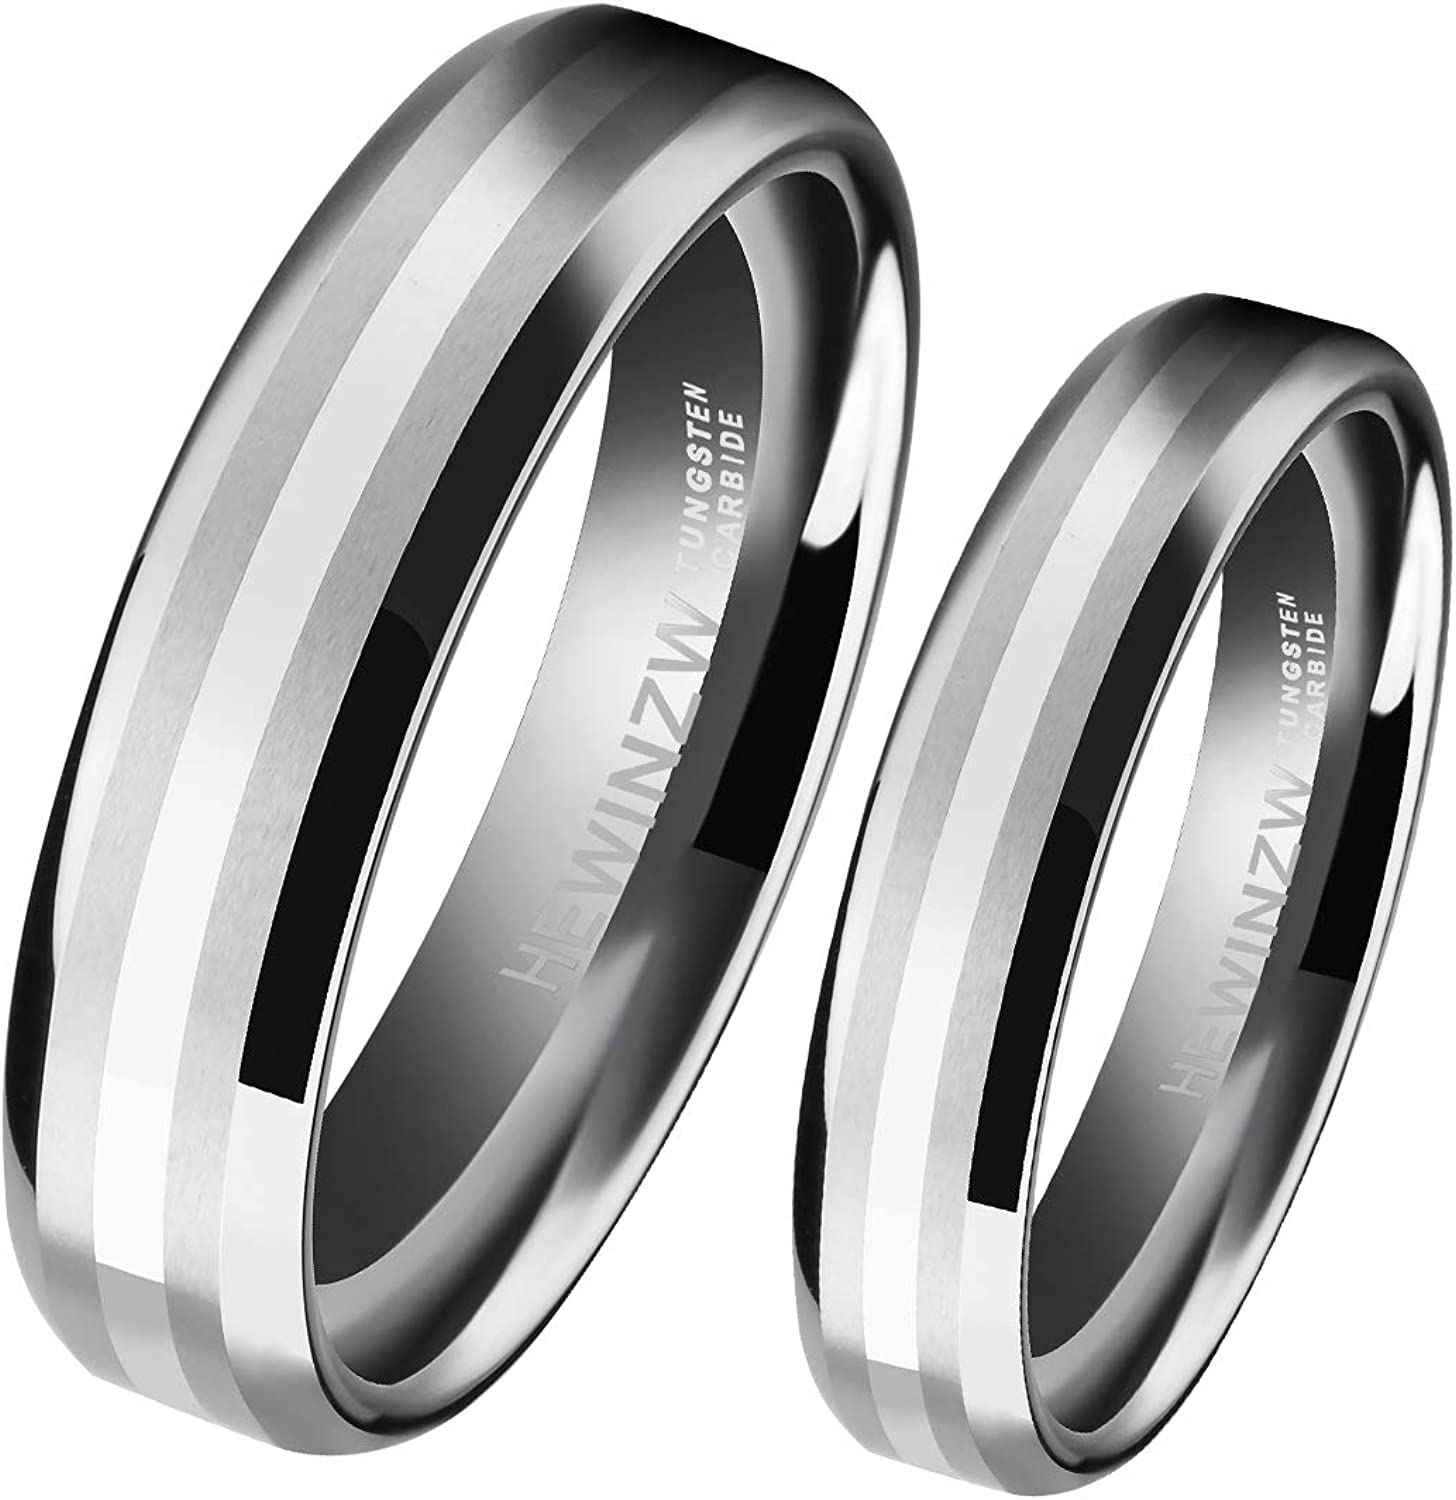 HEWINZW Tungsten Rings His Her Center 6mm/8mm Inlaid 14k White Gold Mens Womens Couple Wedding Band Comfort Fit